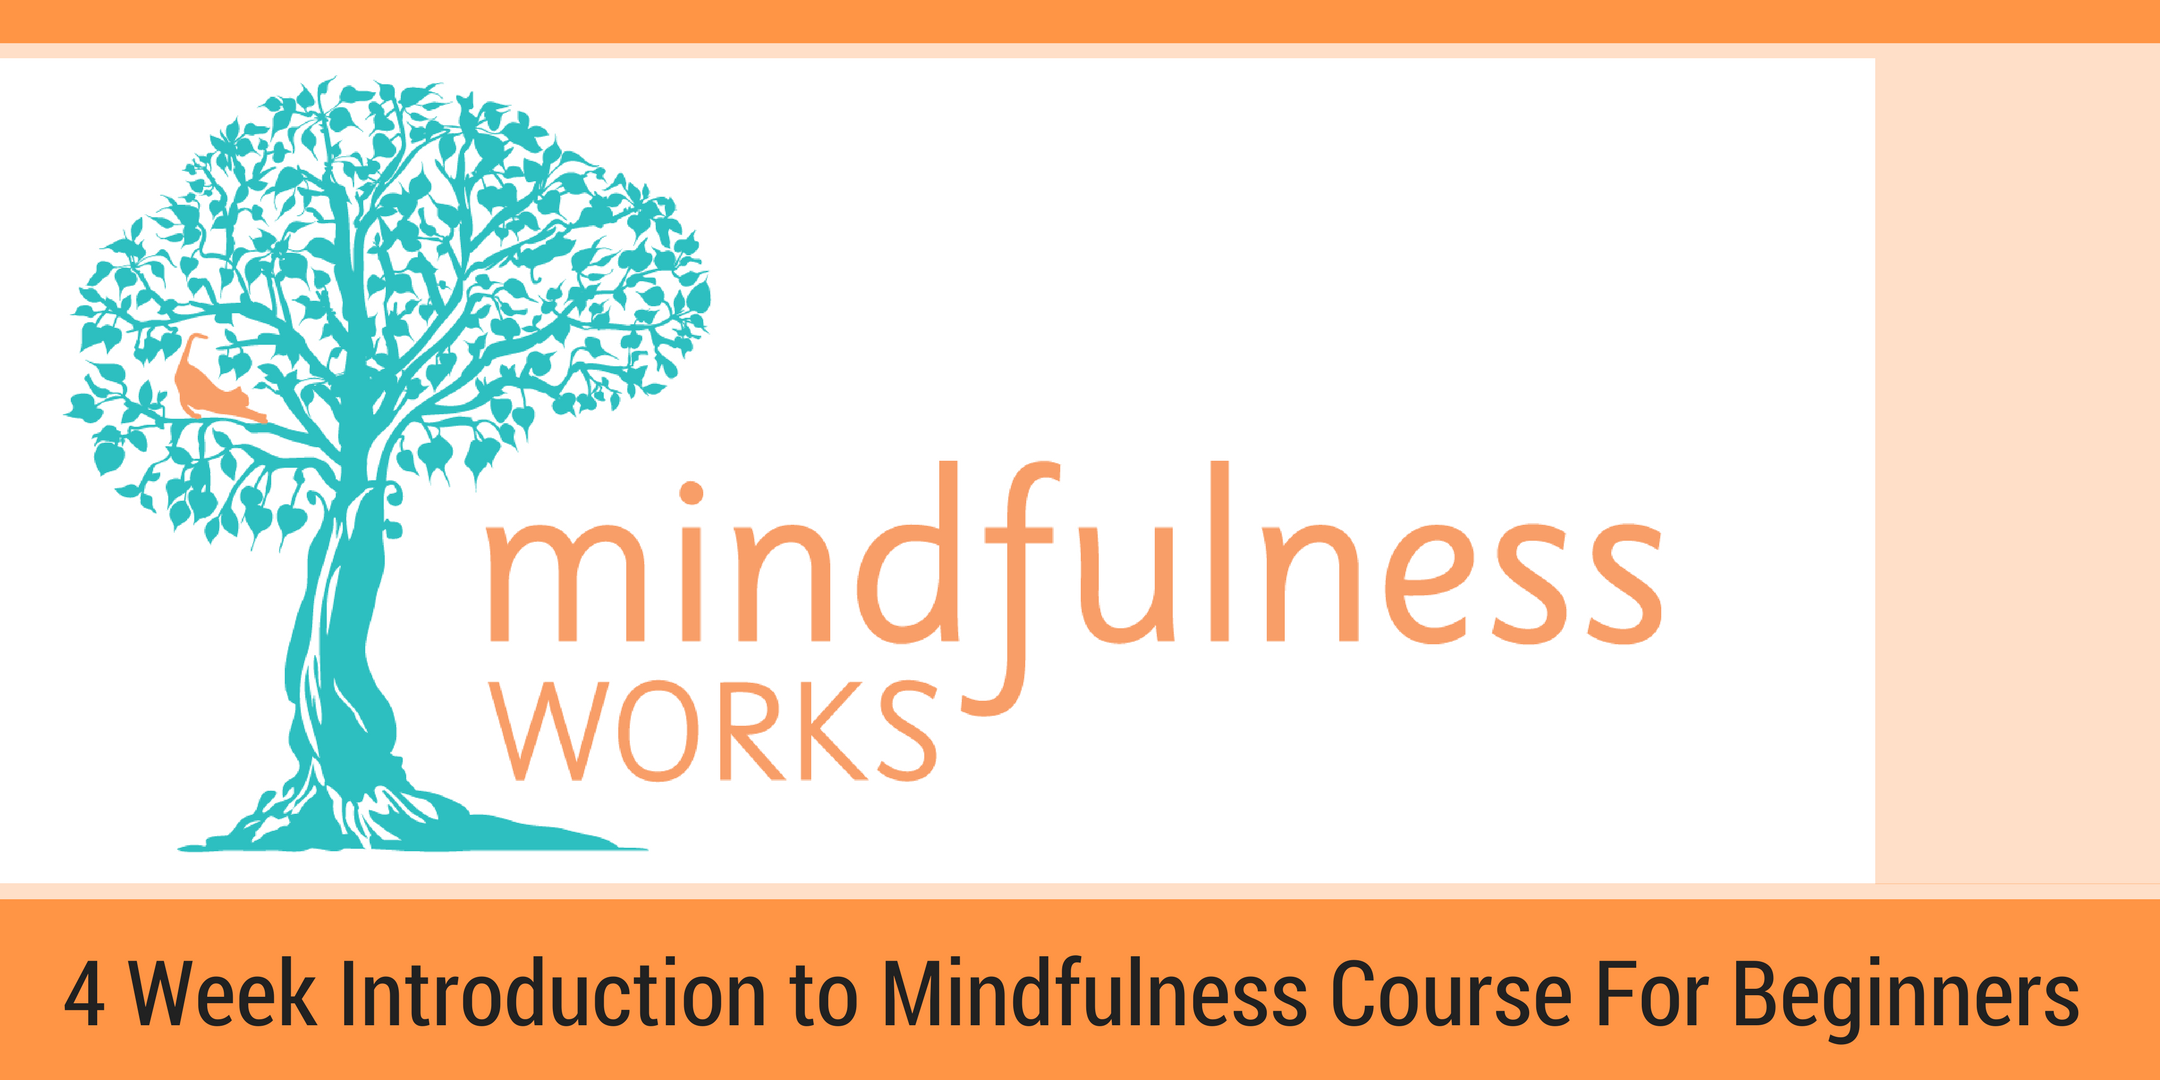 Brisbane (Tingalpa) – An Introduction to Mindfulness & Meditation 4 Week Course